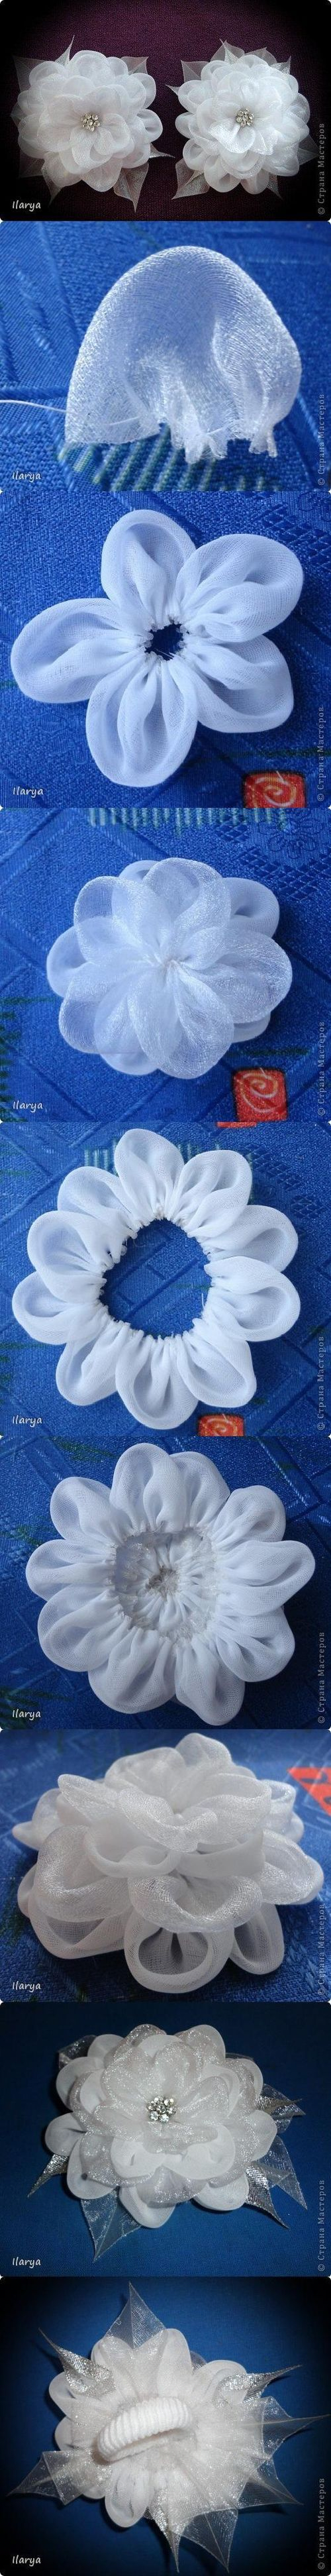 I'd like to improvise this to make a way cool wreath!